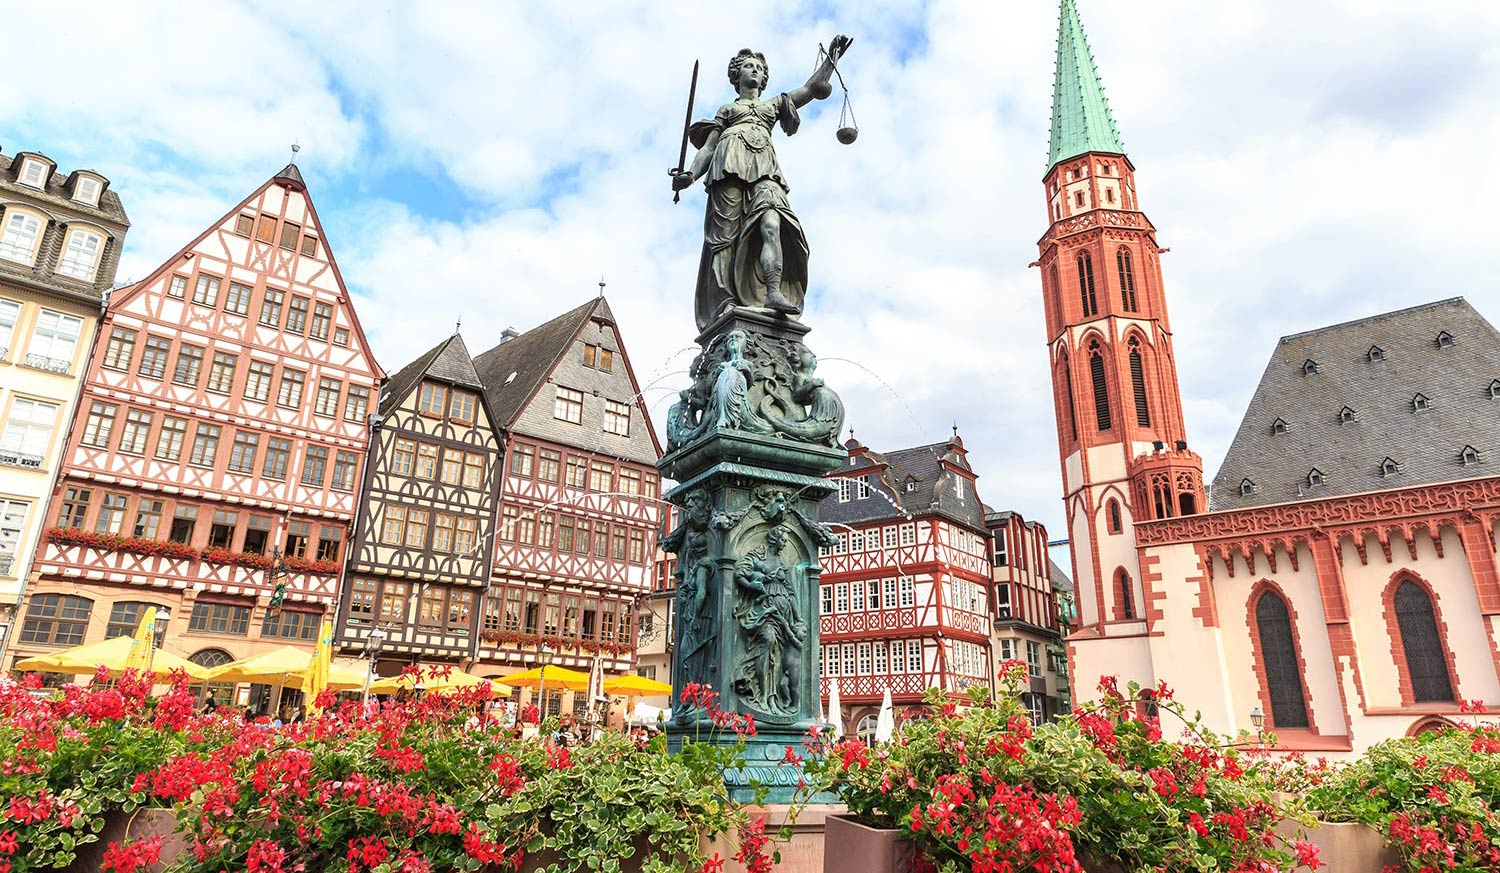 Multilevel buildings, red flowers and a statue in Frankfurt